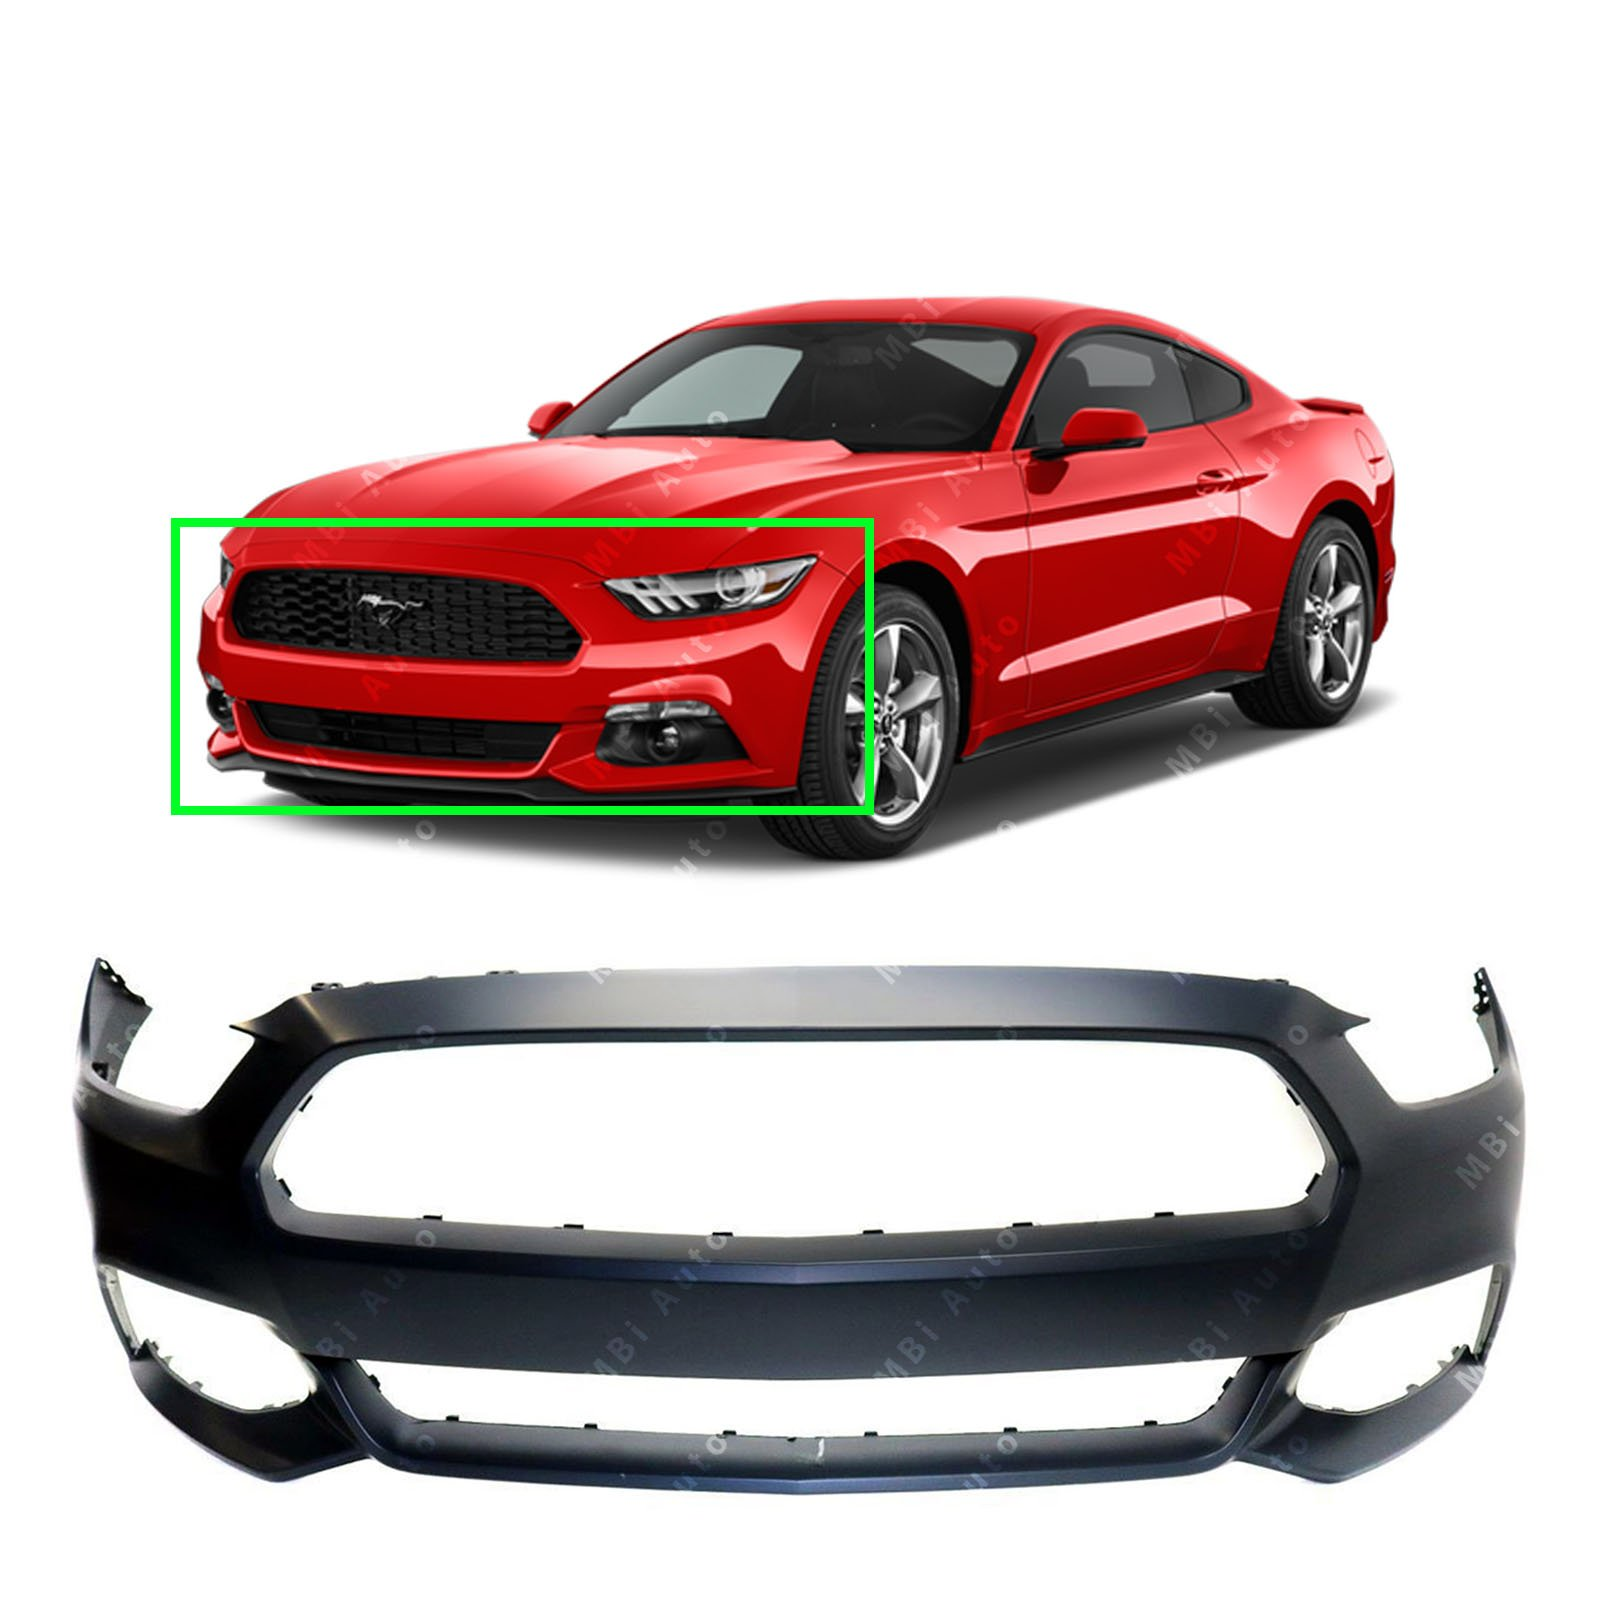 MBI AUTO - Primered, Front Bumper Cover Fascia for 2015 2016 2017 Ford Mustang W/Out Tow Holes 15 16 17, FO1000704